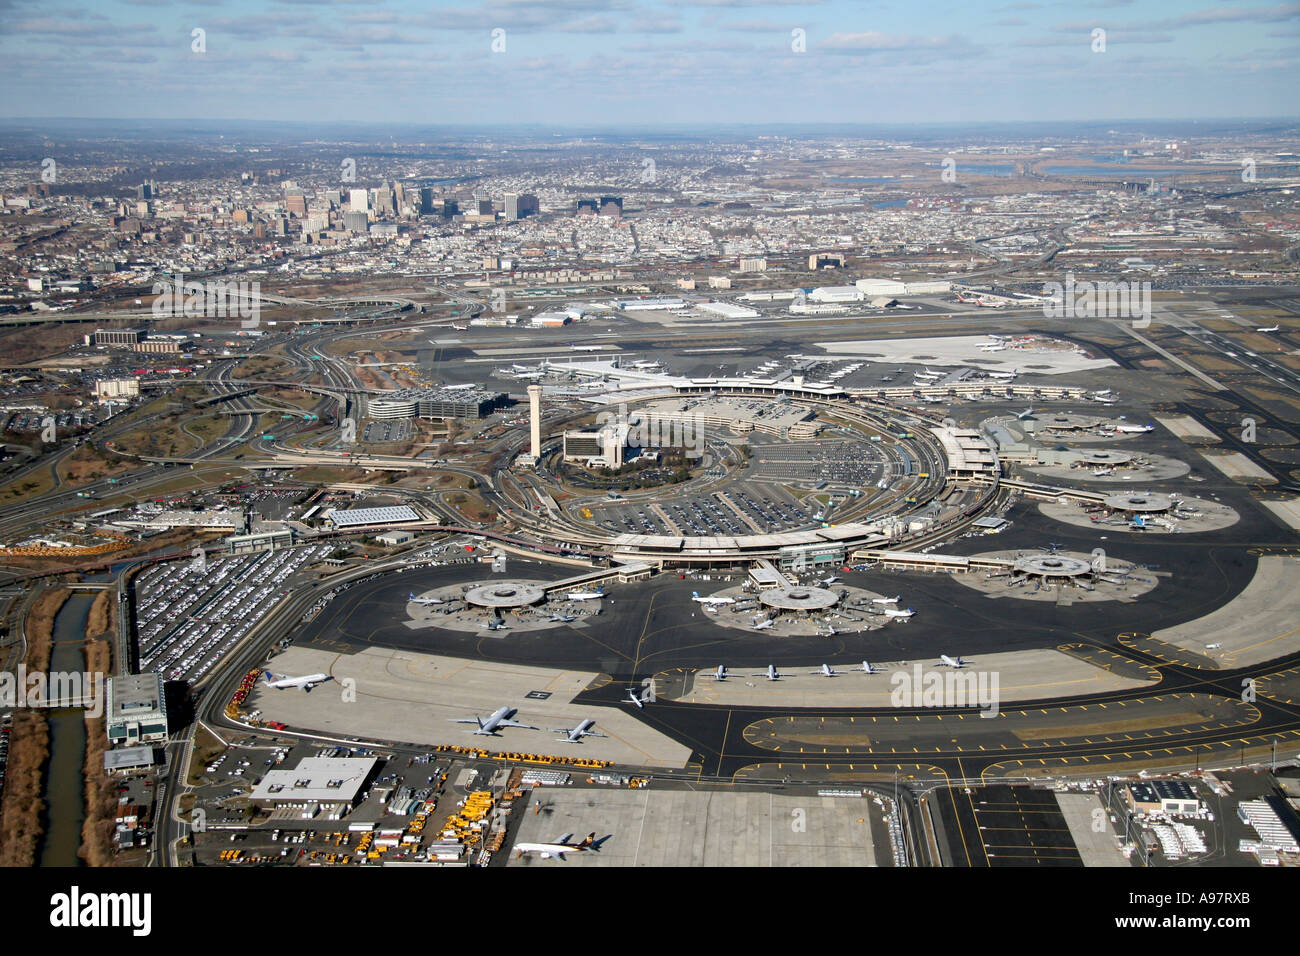 newark airport Opening its doors in 1928, newark airport is the nation's oldest airfield and home to the first us commercial airline terminal today, newark liberty international airport serves just over 35 million passengers a year.